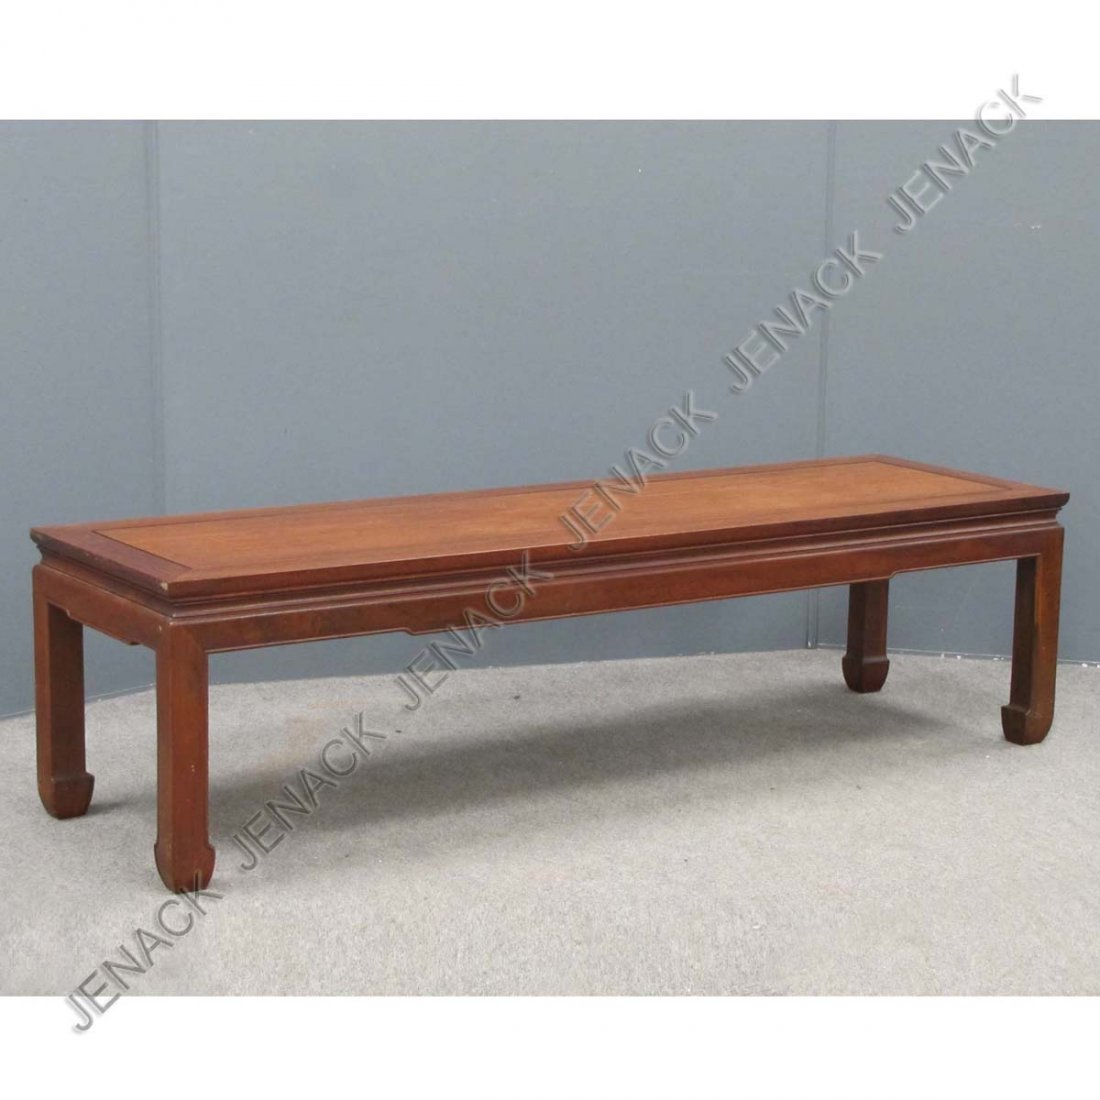 7: CHINESE CARVED HARDWOOD LOW TABLE